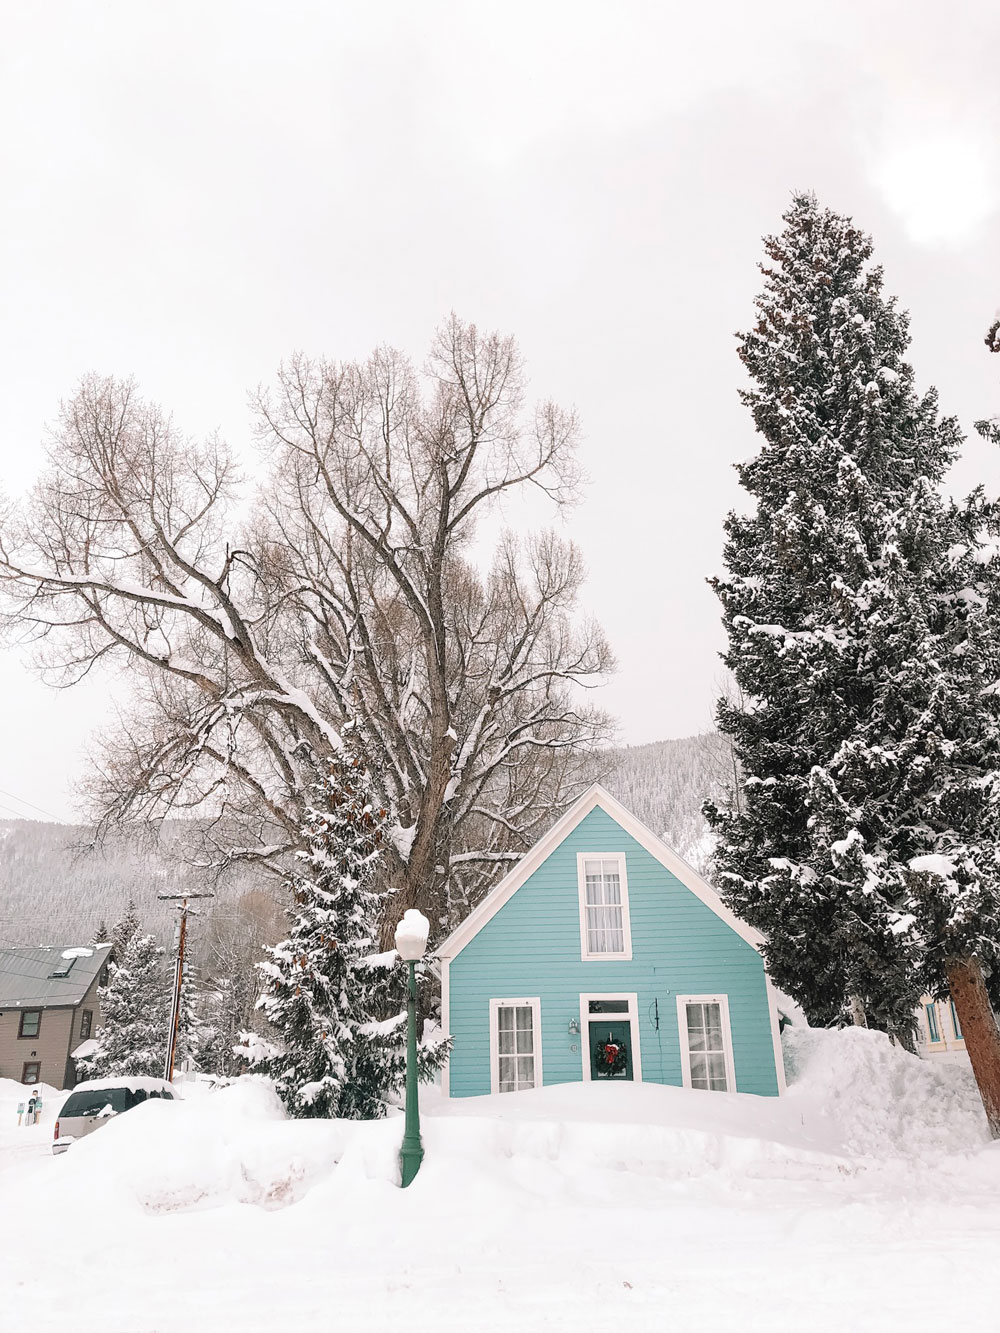 Crested Butte, Colorado has such winter charm